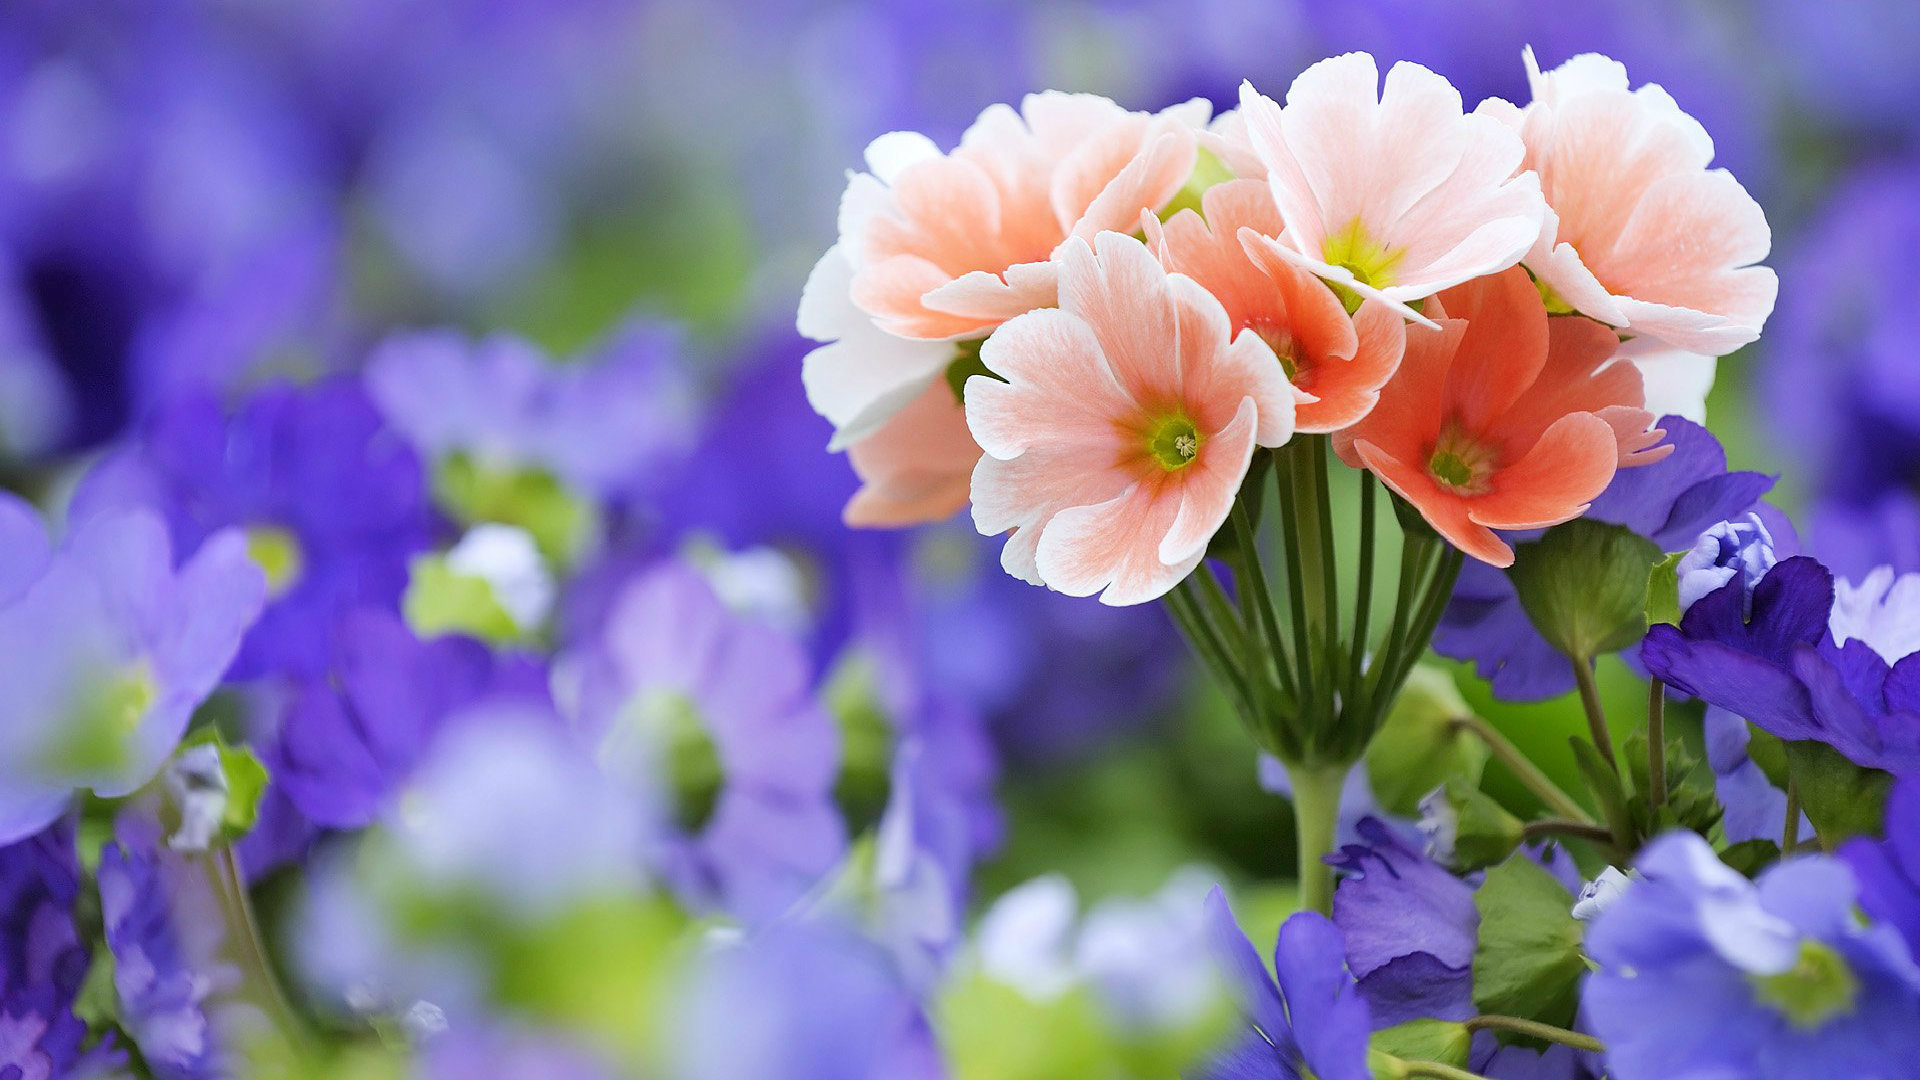 Flowers wallpapers high definition wallpapers high definition - Hd Flower Wallpapers 41 Wallpapers